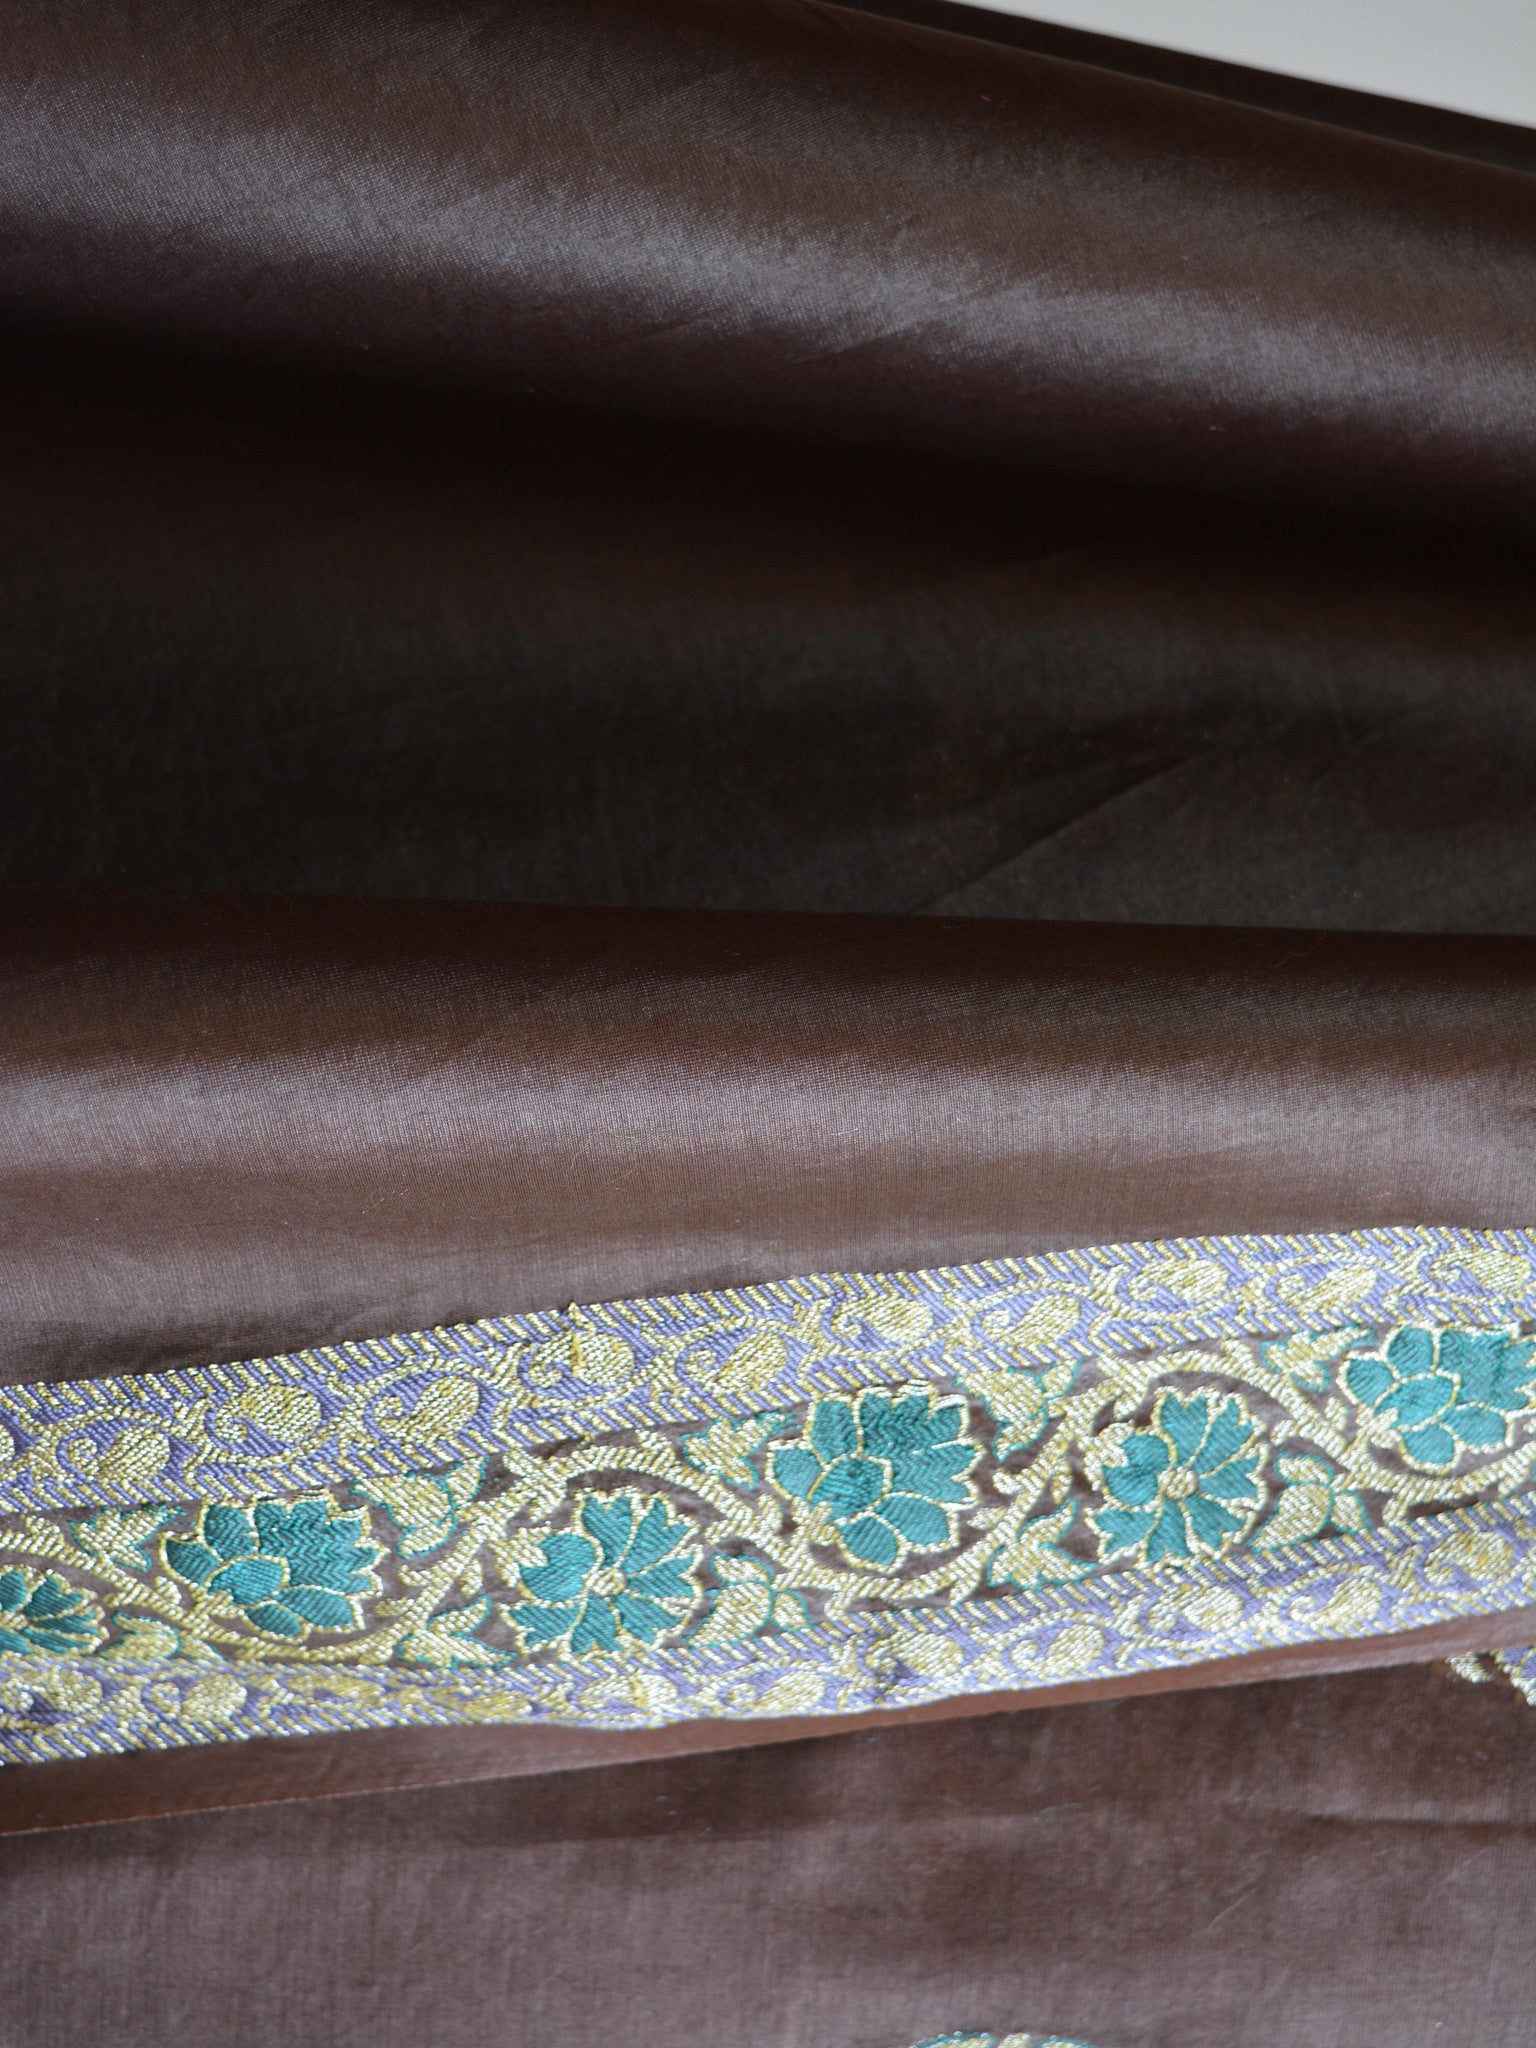 Banarasee/Banarasi Salwar Kameez Glossy Cotton Silk Woven Buti Fabric-Coffee Brown